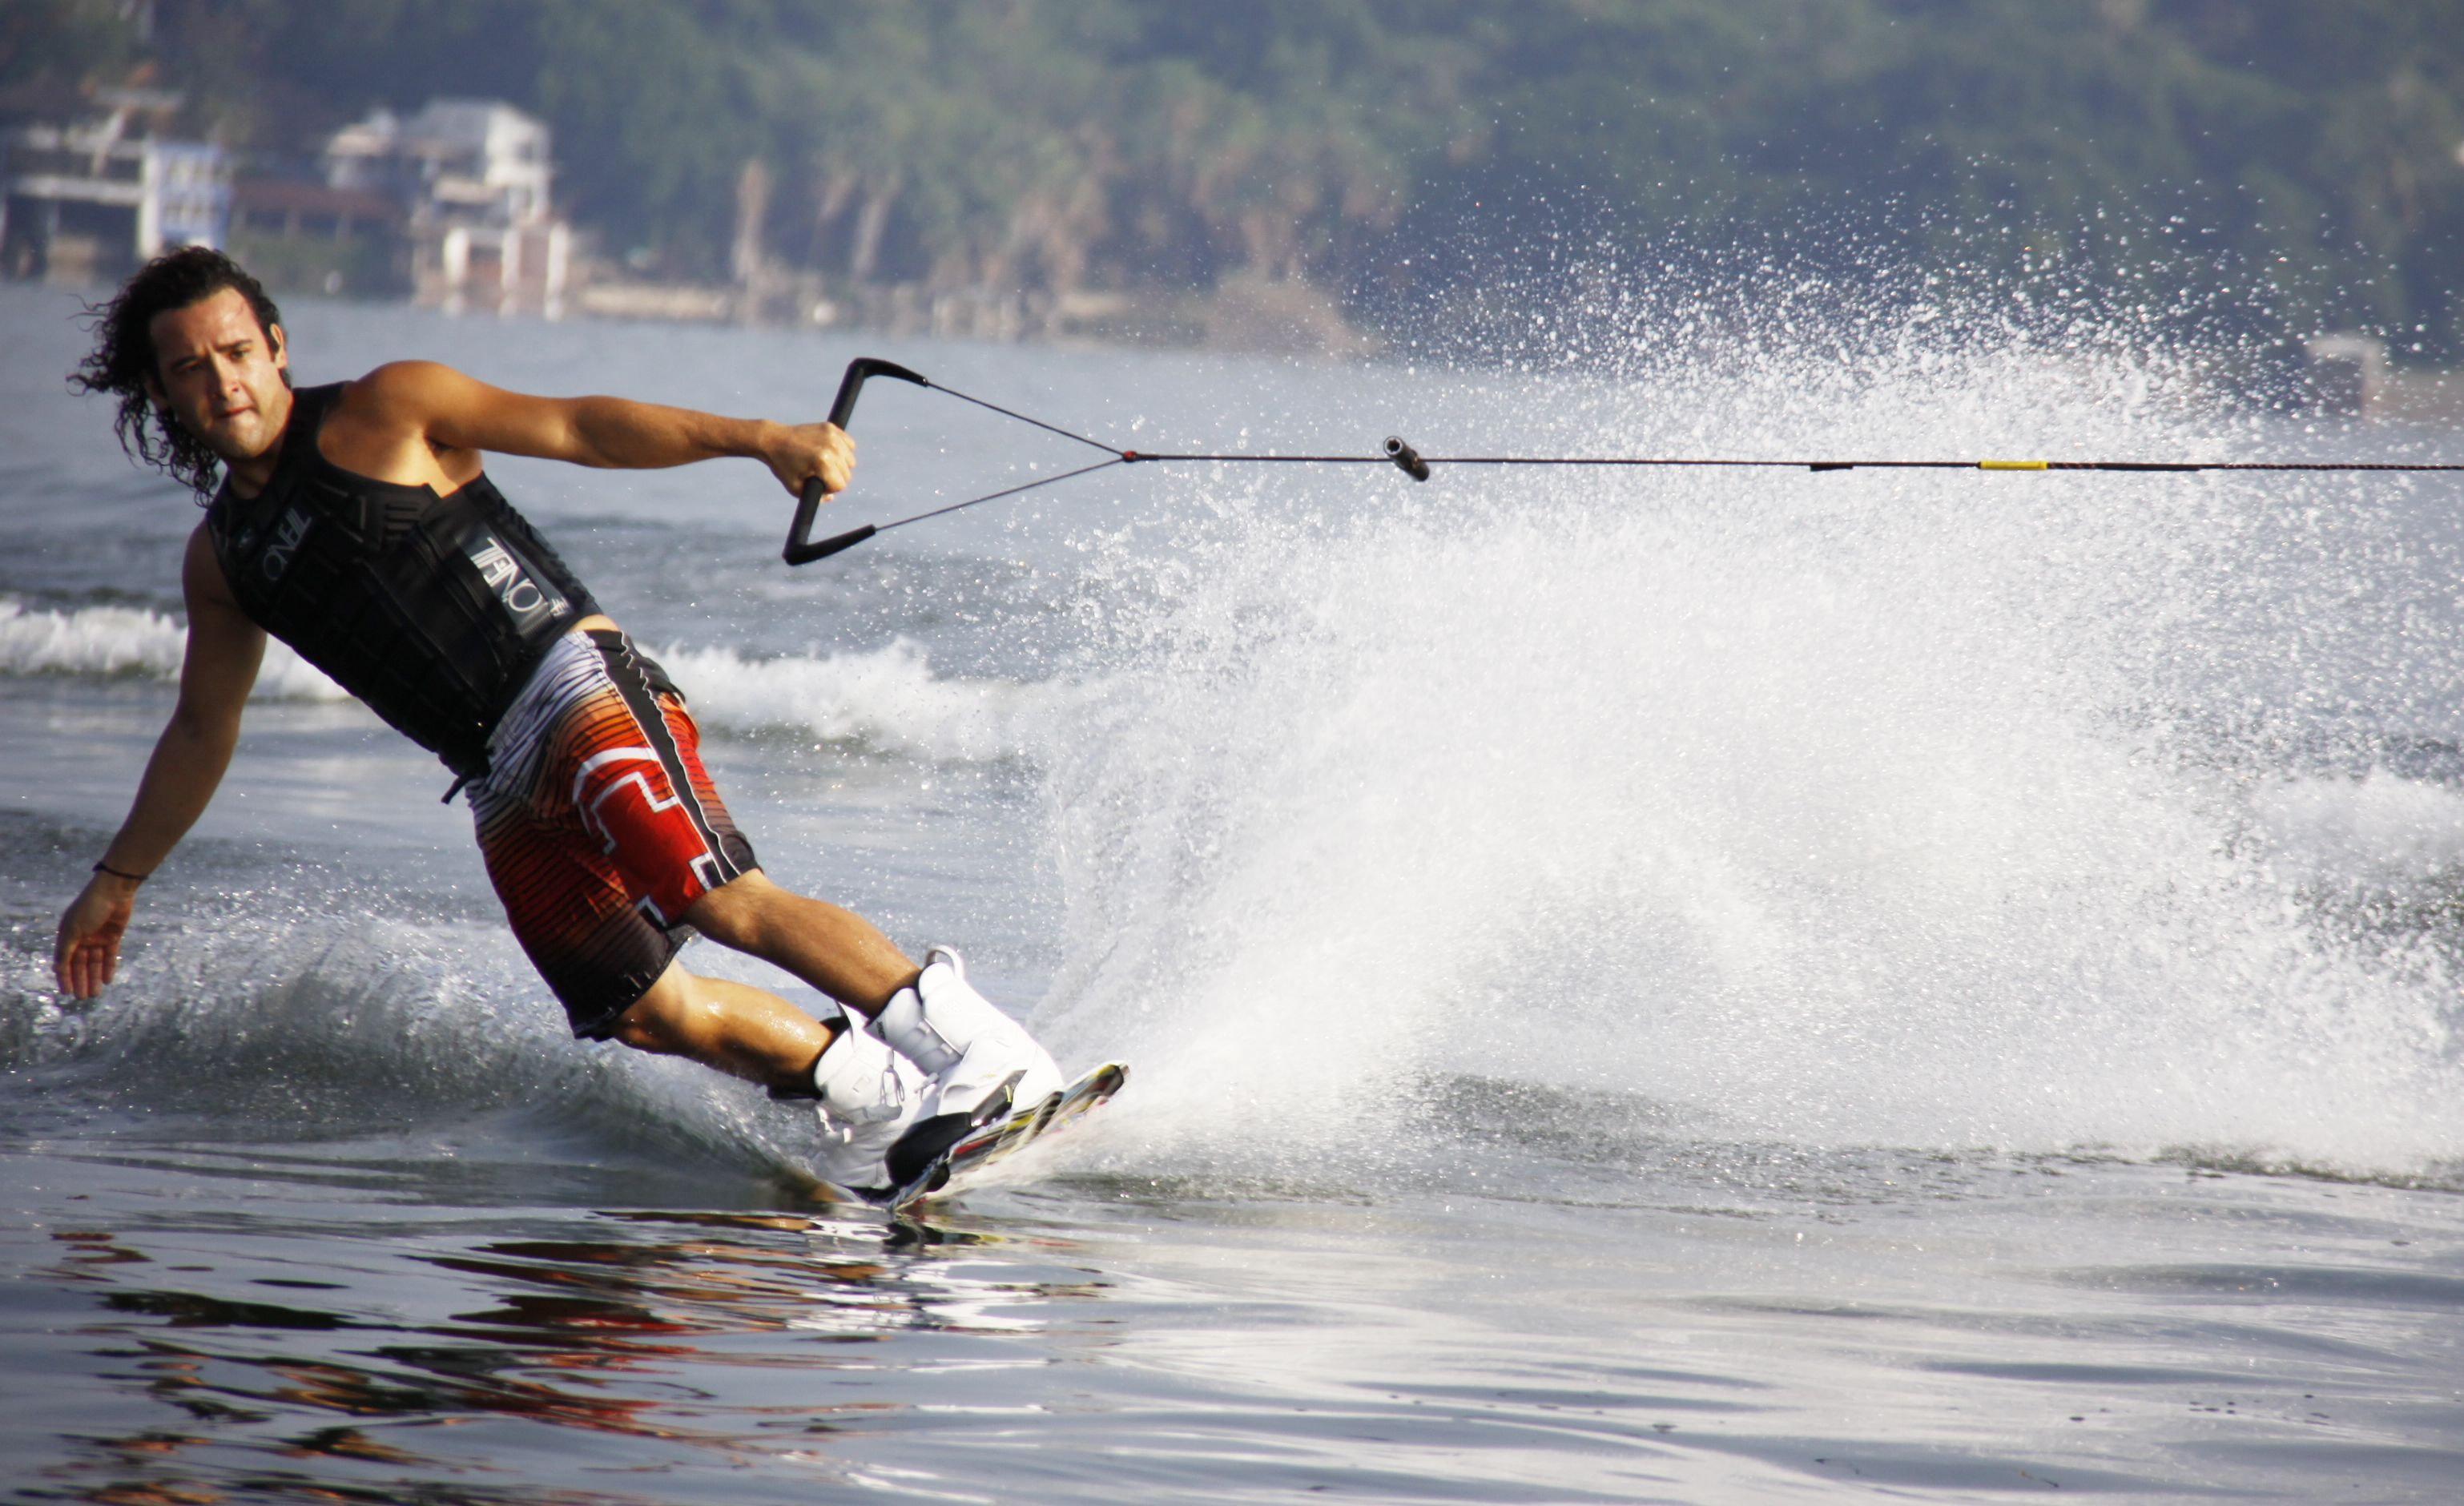 Wakeboarding  Wikipedia